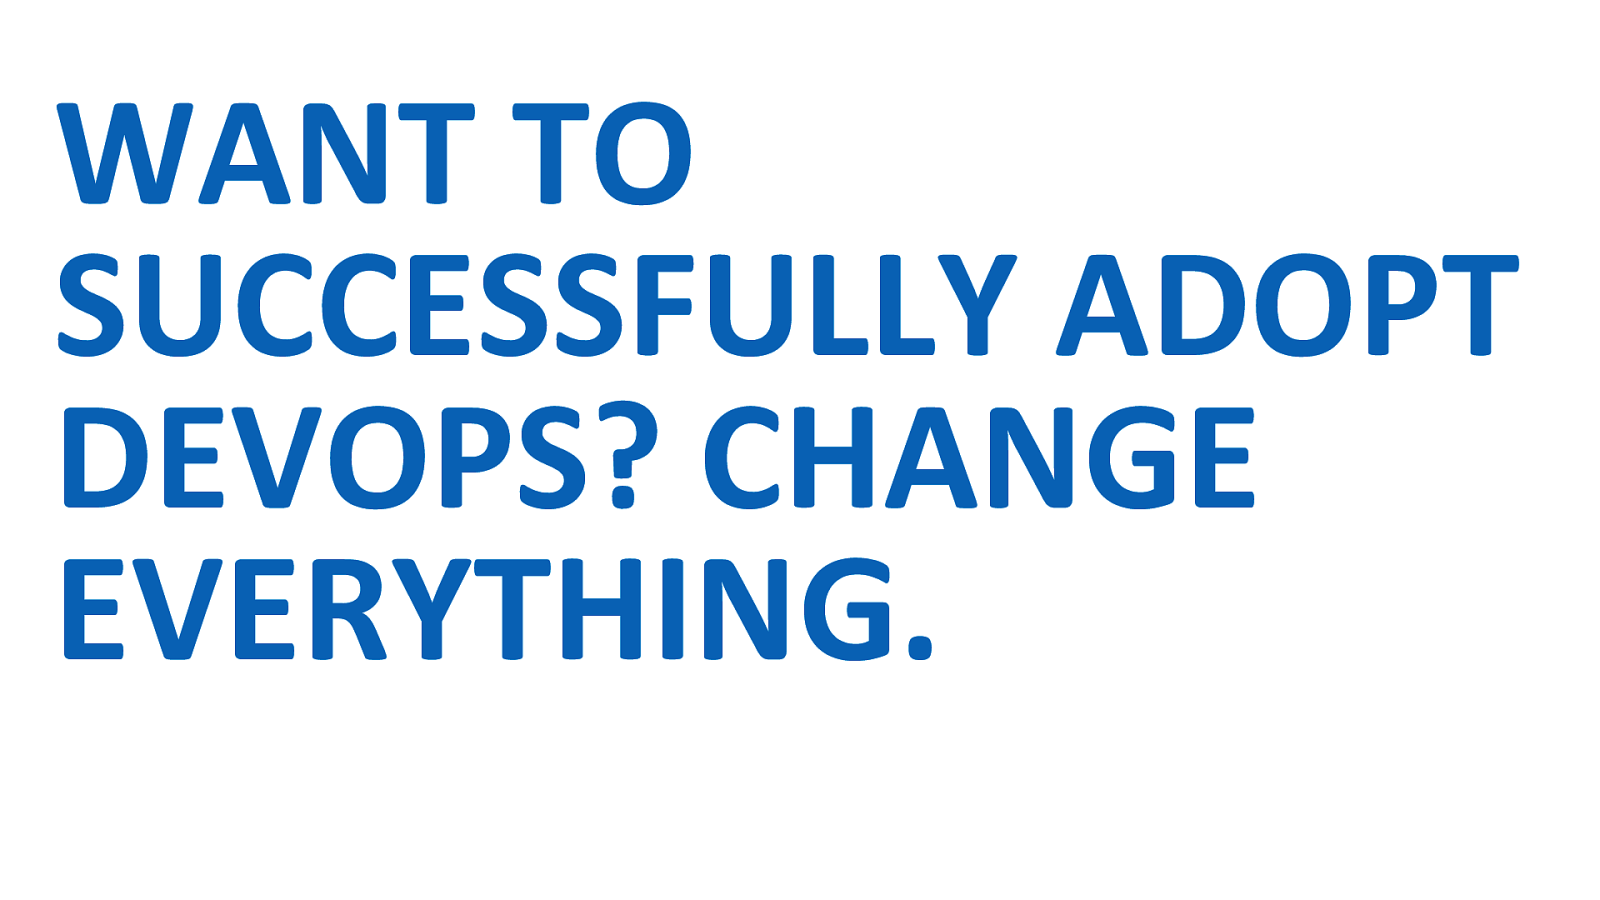 Want to successfully adopt DevOps? Change Everything